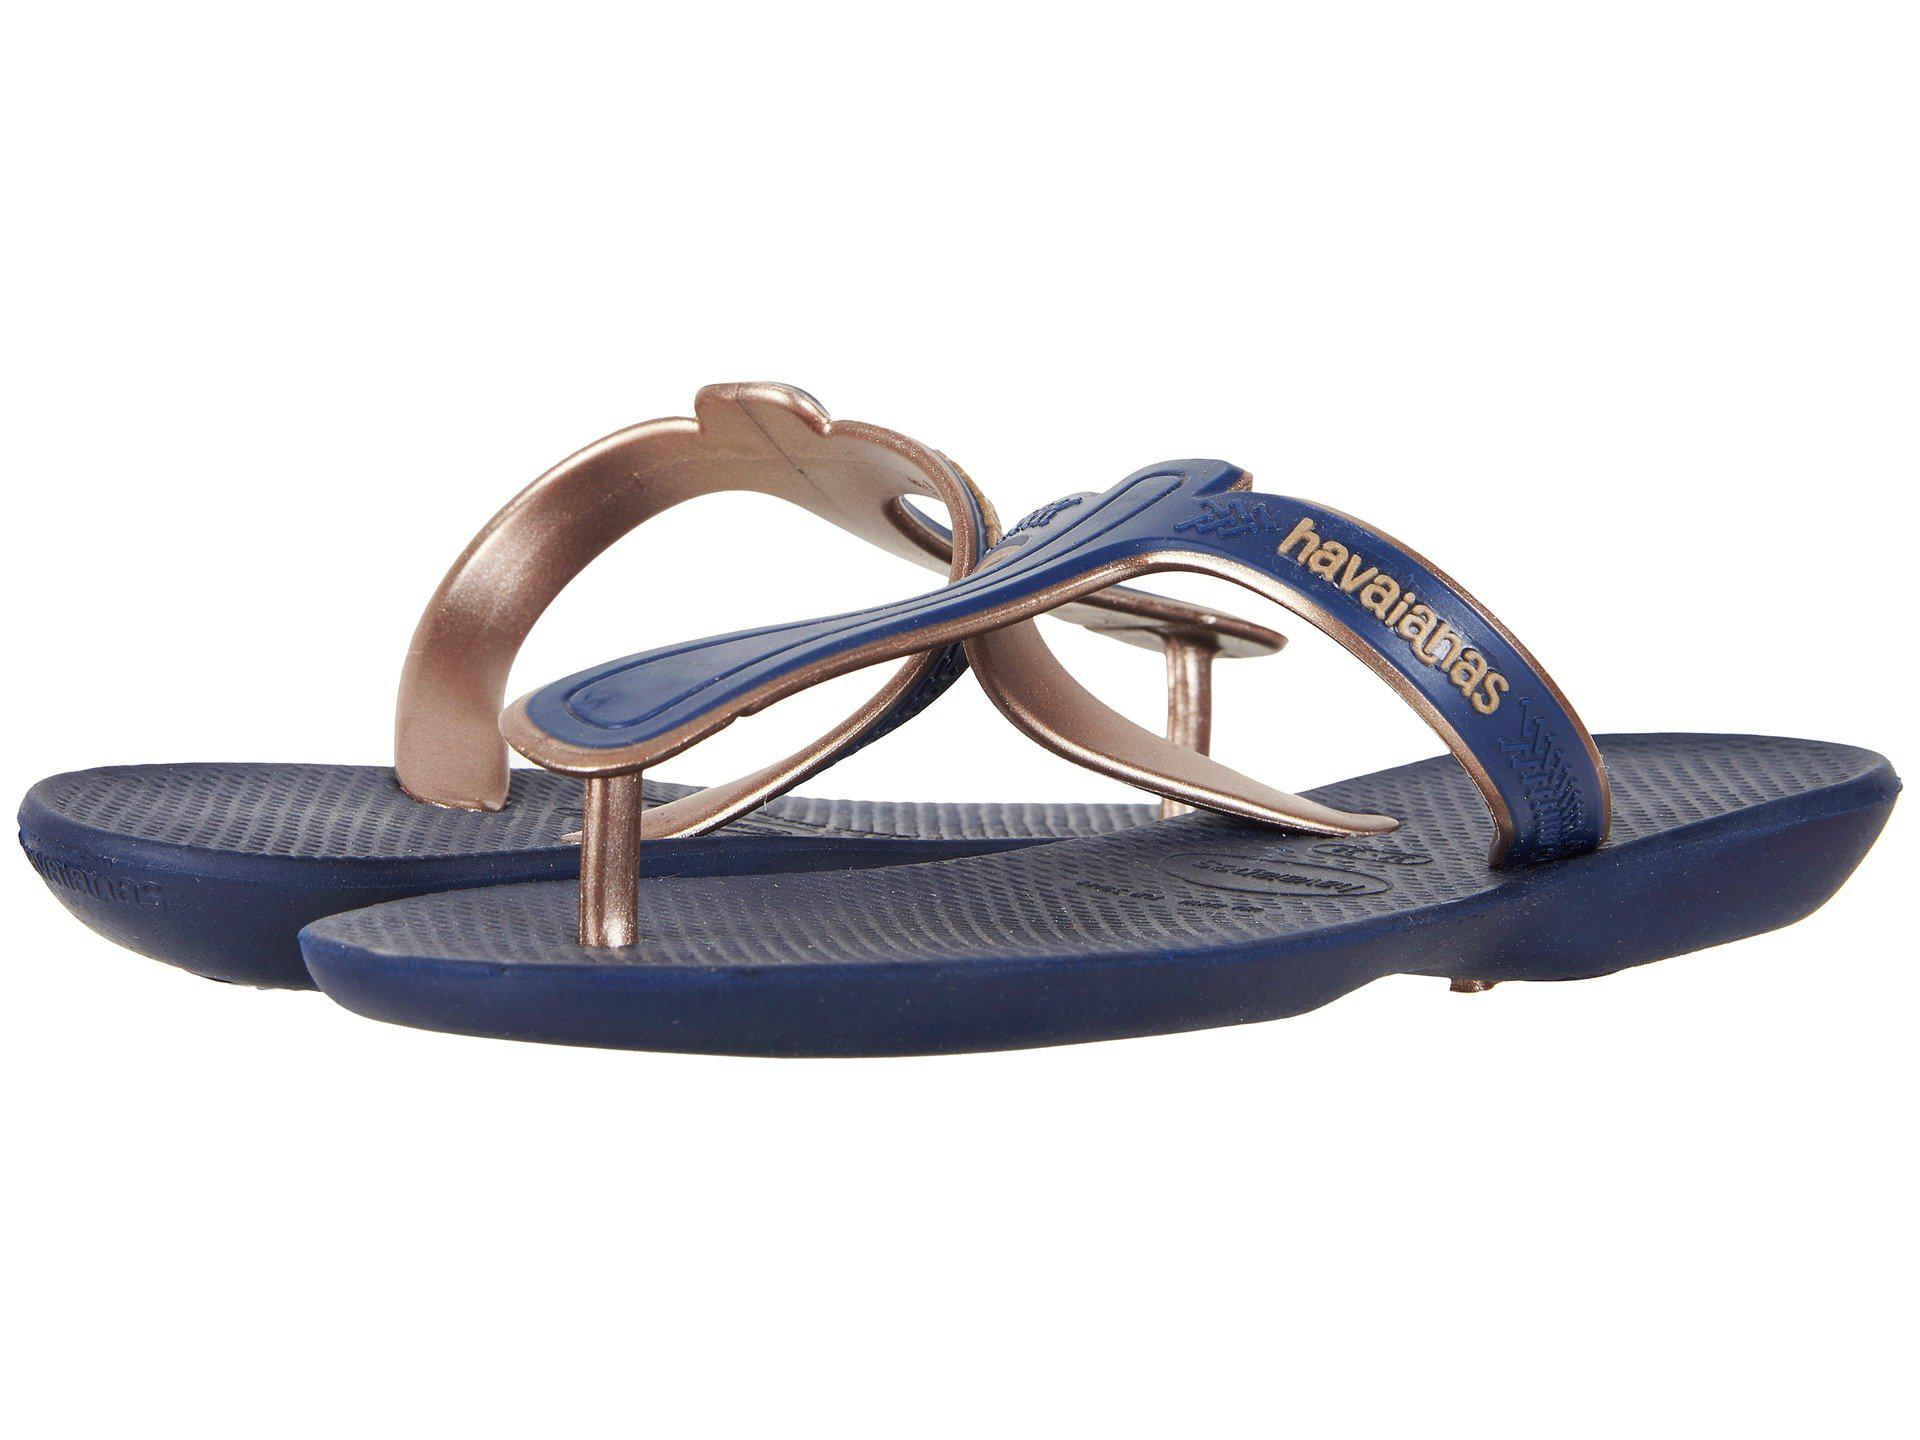 58a7f6e87e36 Lyst - Havaianas Casual Flip-flops in Blue - Save 33.33333333333333%